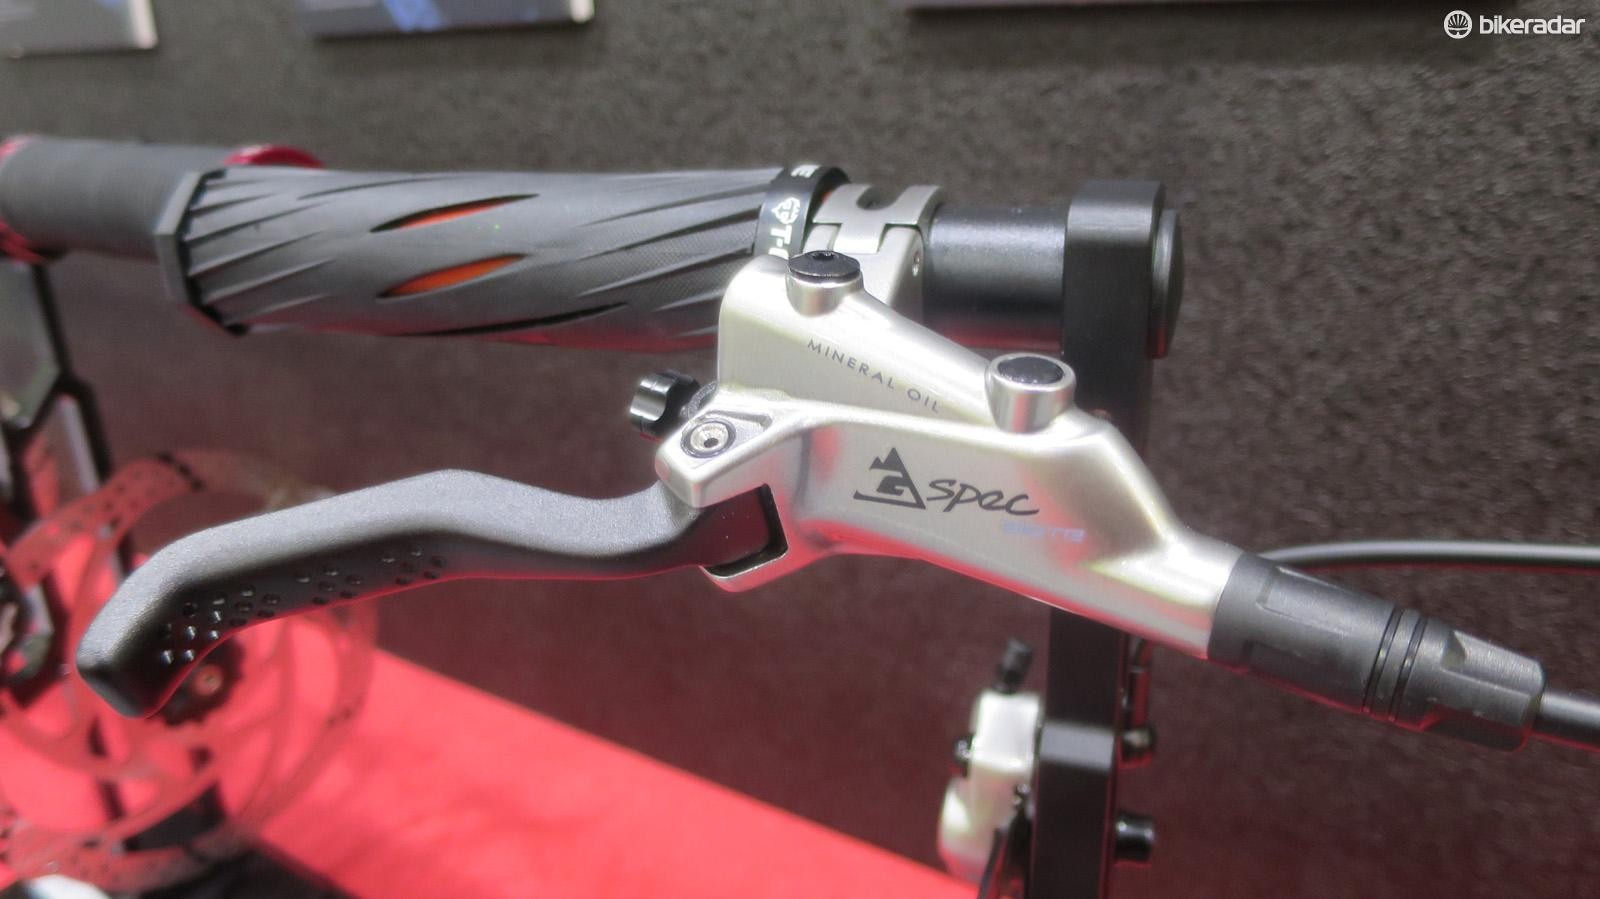 TRP's G-Spec Slate brake was designed and developed with plenty of input from Aaron Gwin